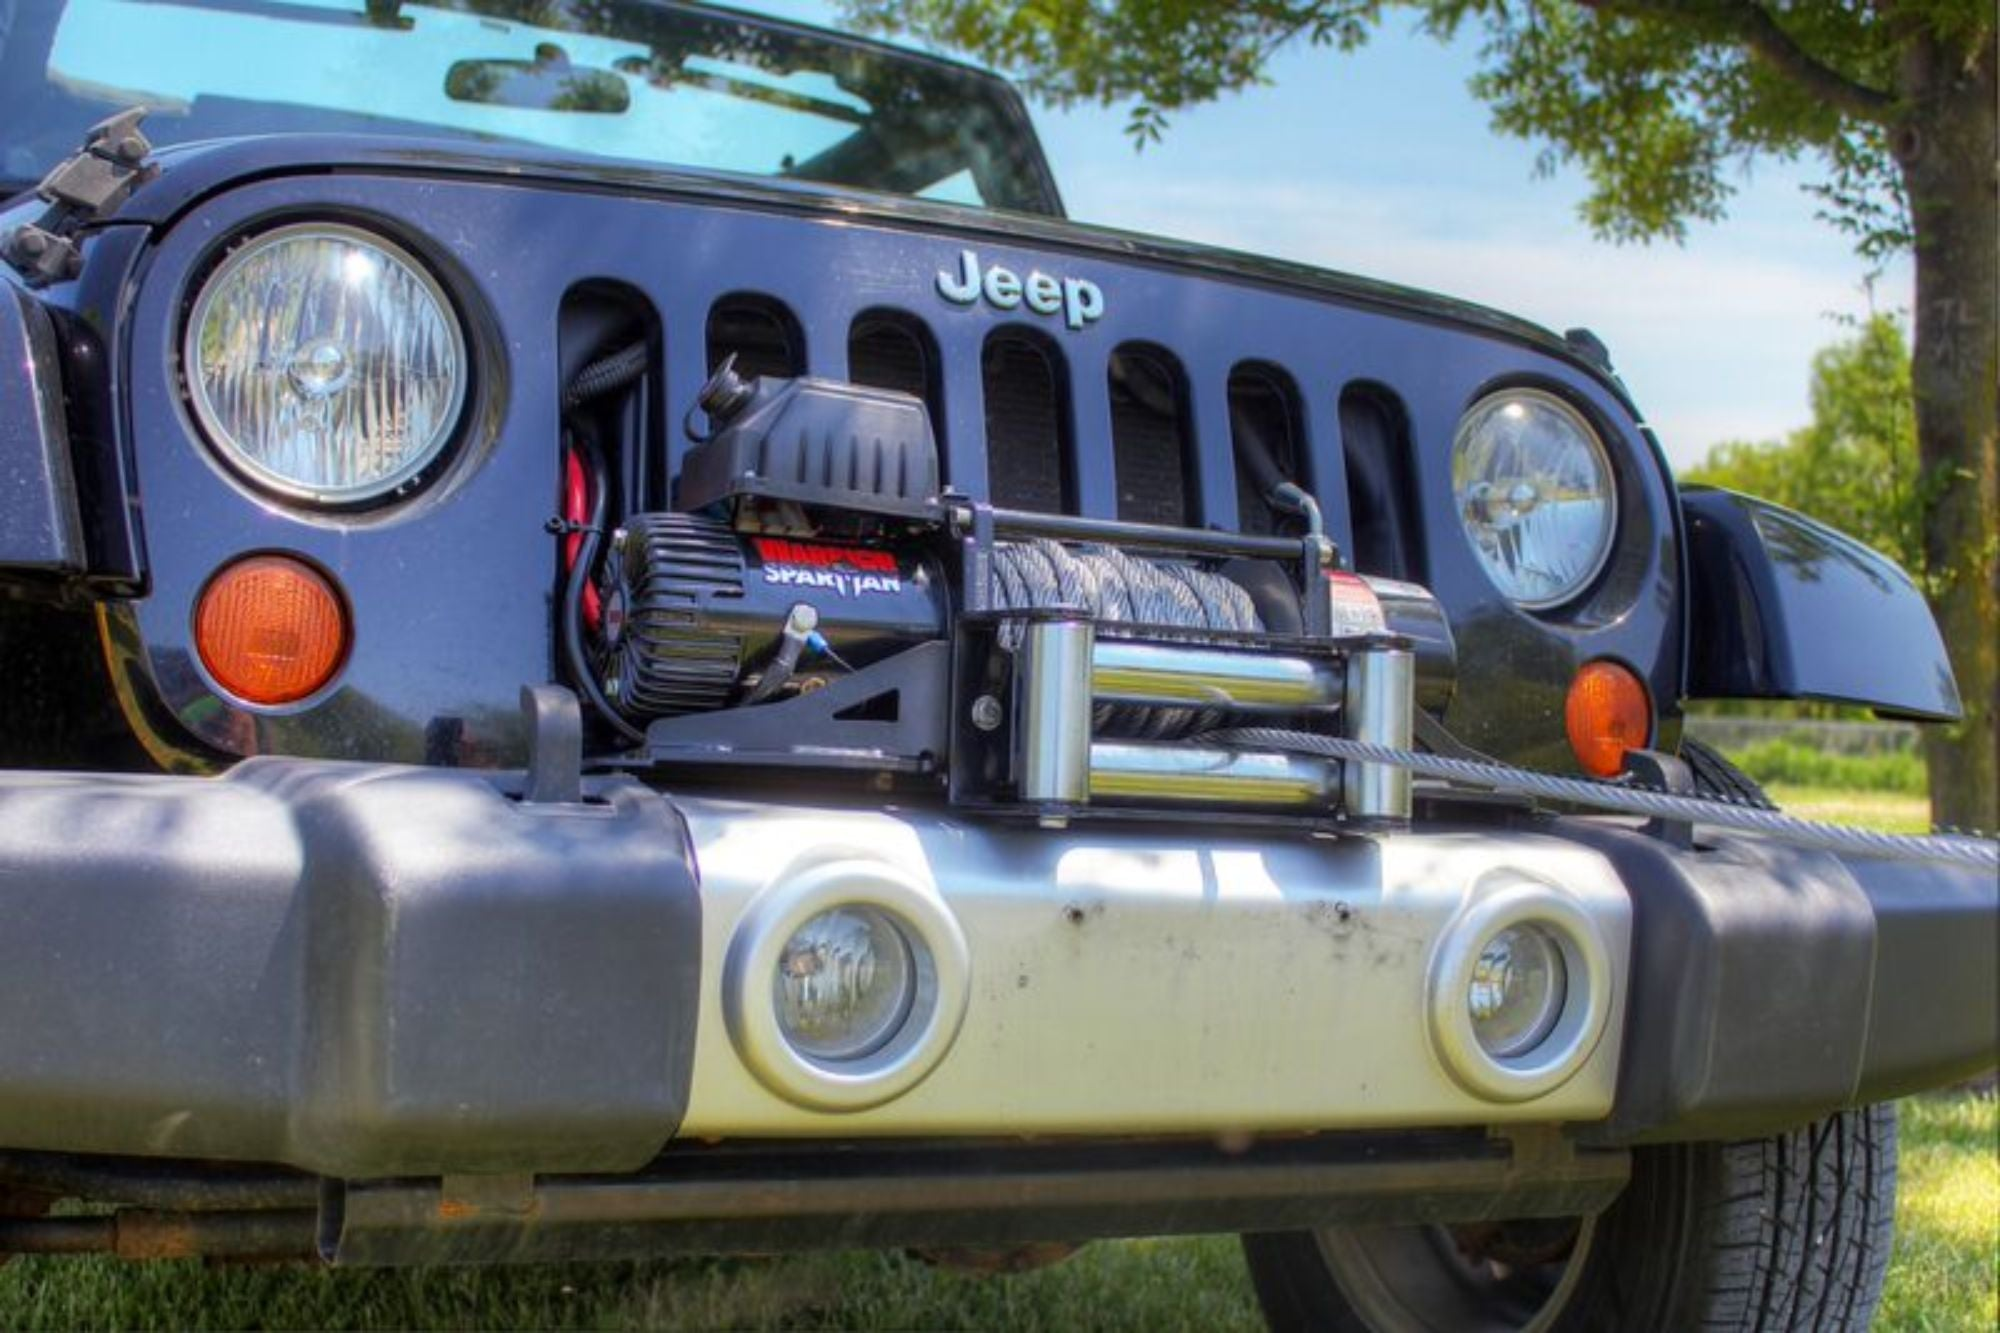 8,000 LB Samurai Series Winch - S20000